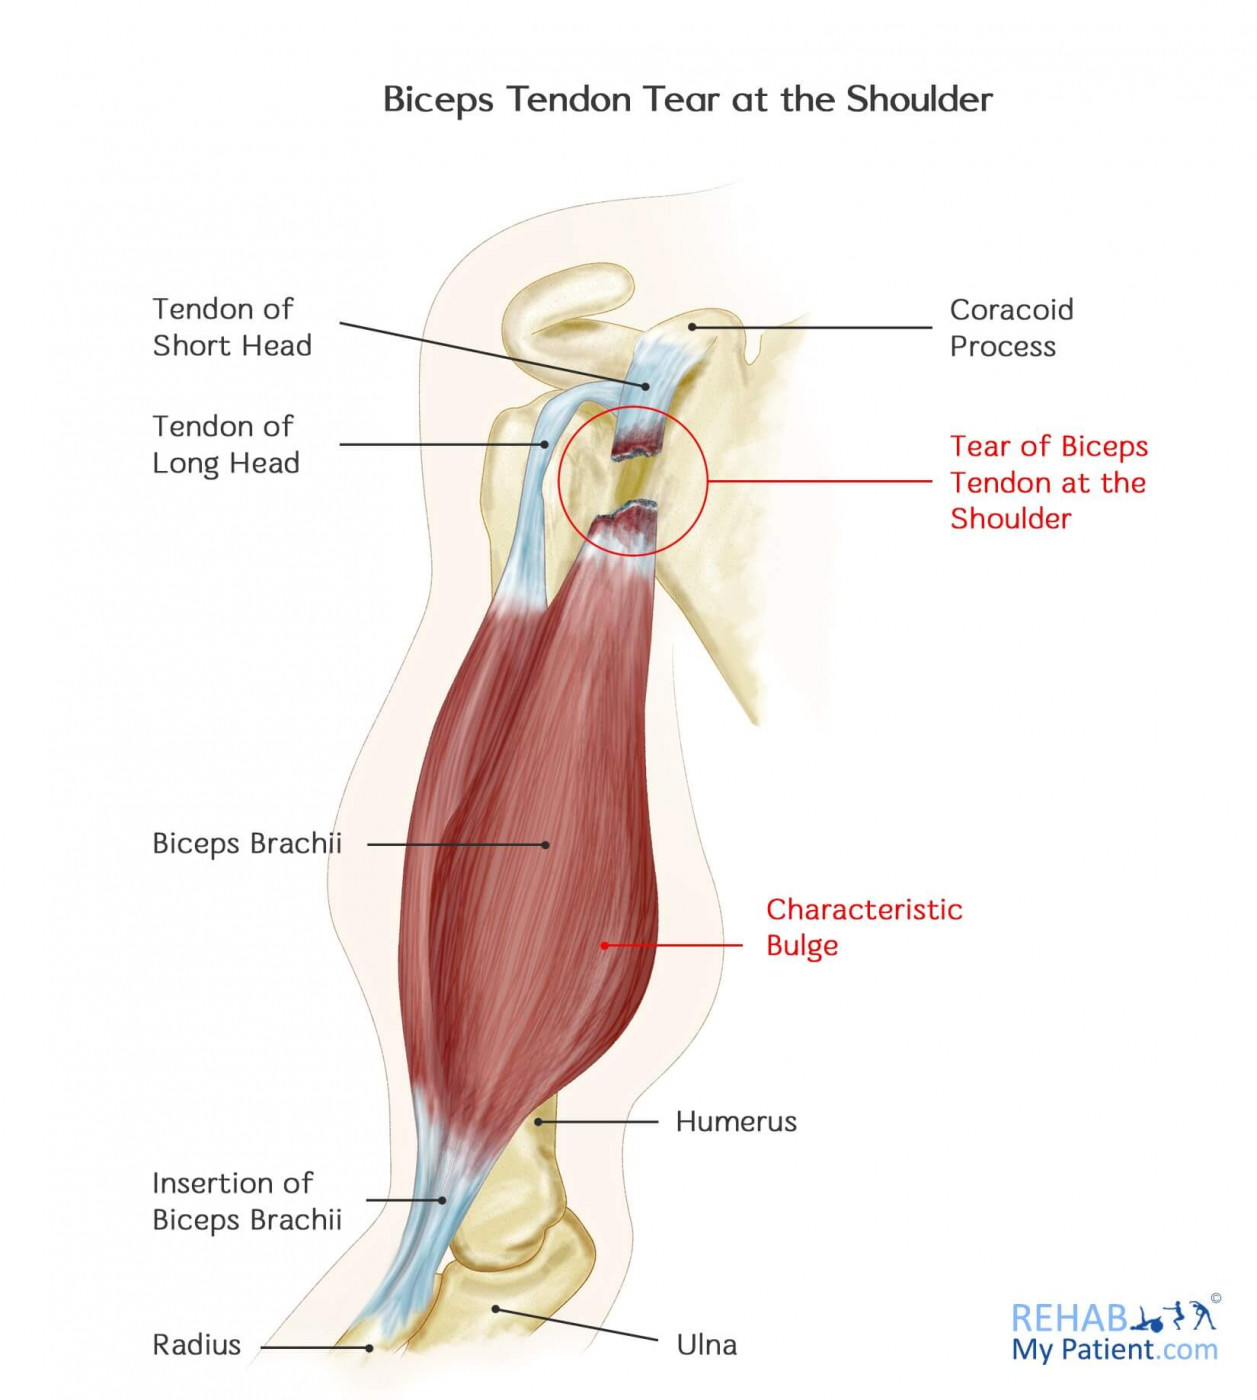 Biceps Tendon Tear at the Shoulder | Rehab My Patient